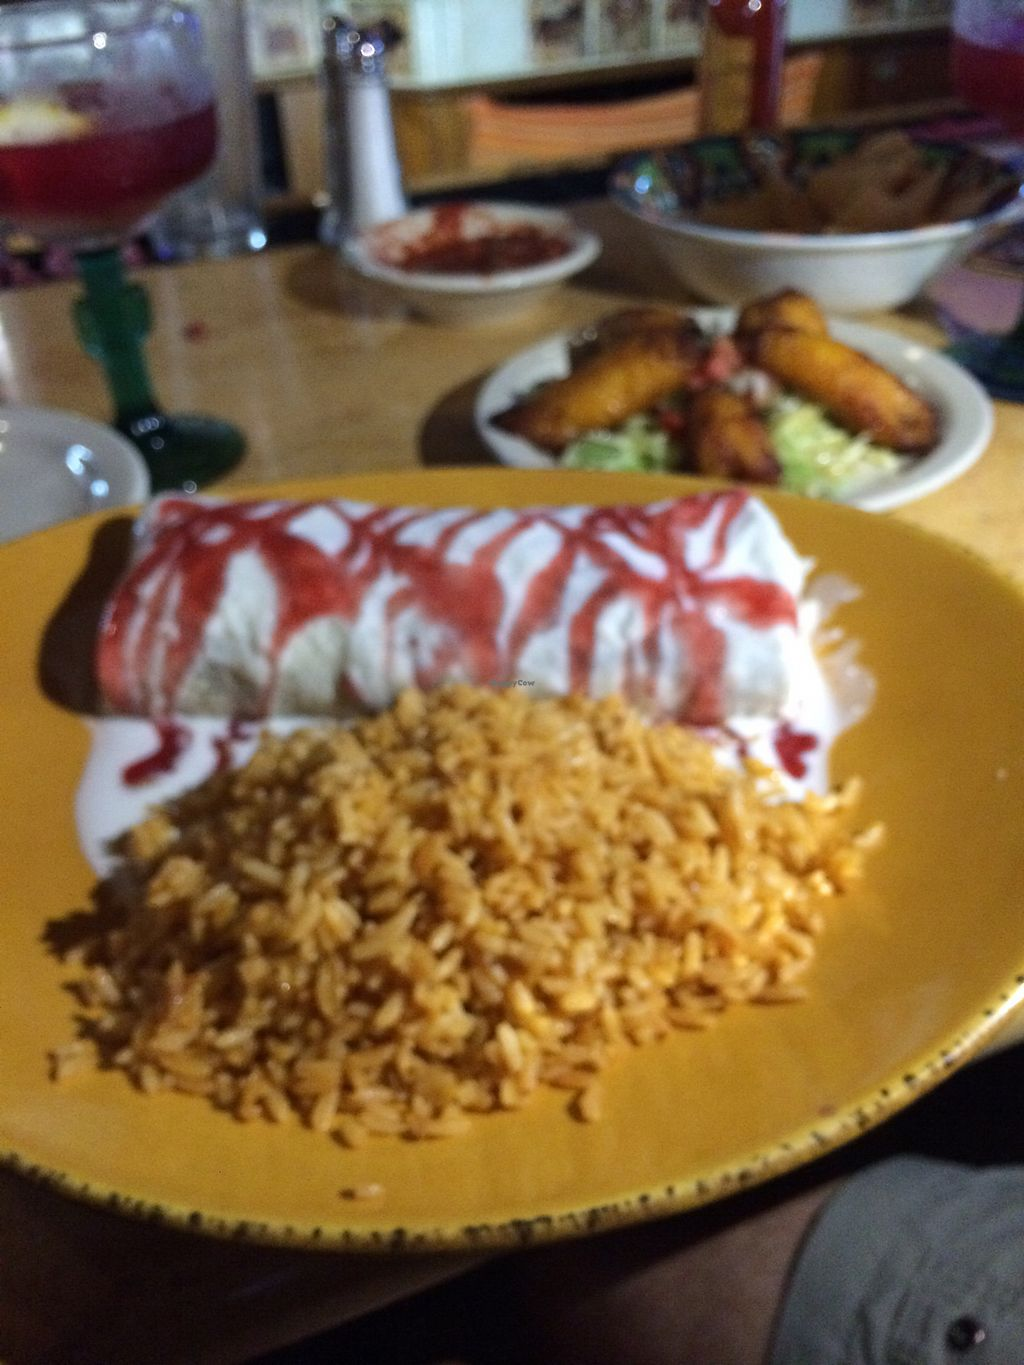 """Photo of Los Amigos  by <a href=""""/members/profile/MaryMargaretMonahan"""">MaryMargaretMonahan</a> <br/>sweet potato burrito  <br/> August 17, 2017  - <a href='/contact/abuse/image/72506/293787'>Report</a>"""